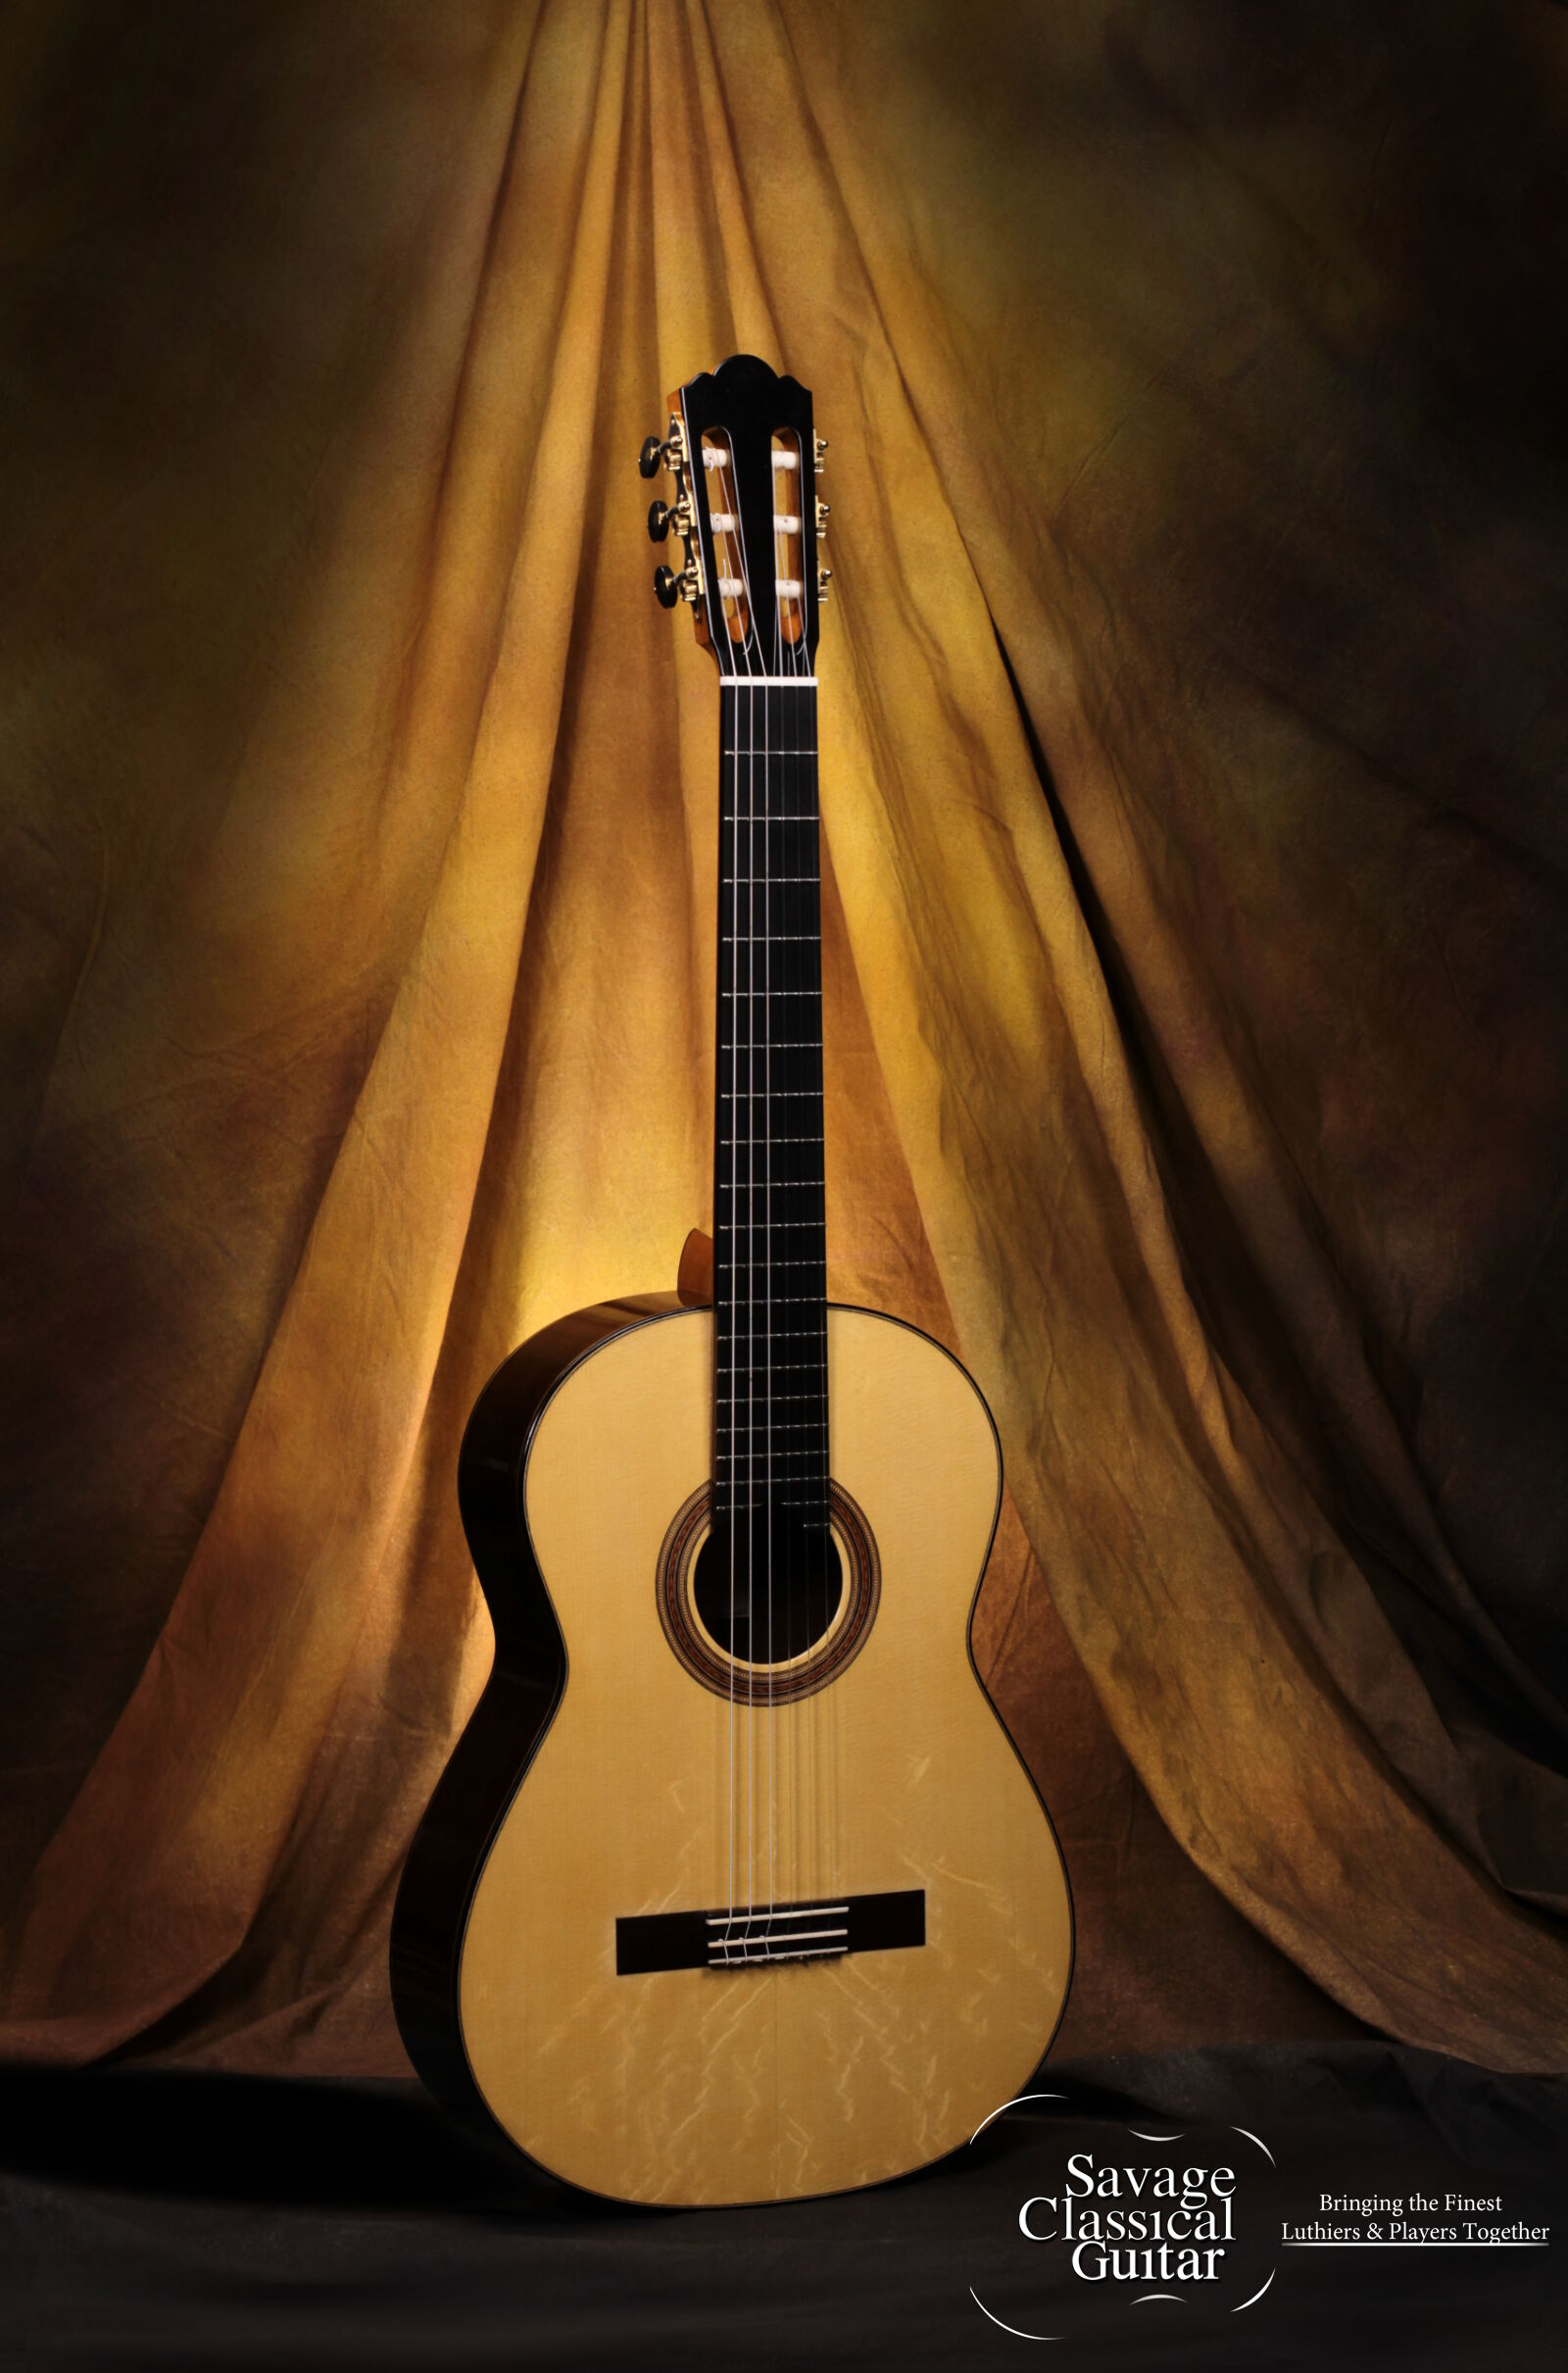 douglass scott classical guitar offered by savage classical guitar. Black Bedroom Furniture Sets. Home Design Ideas